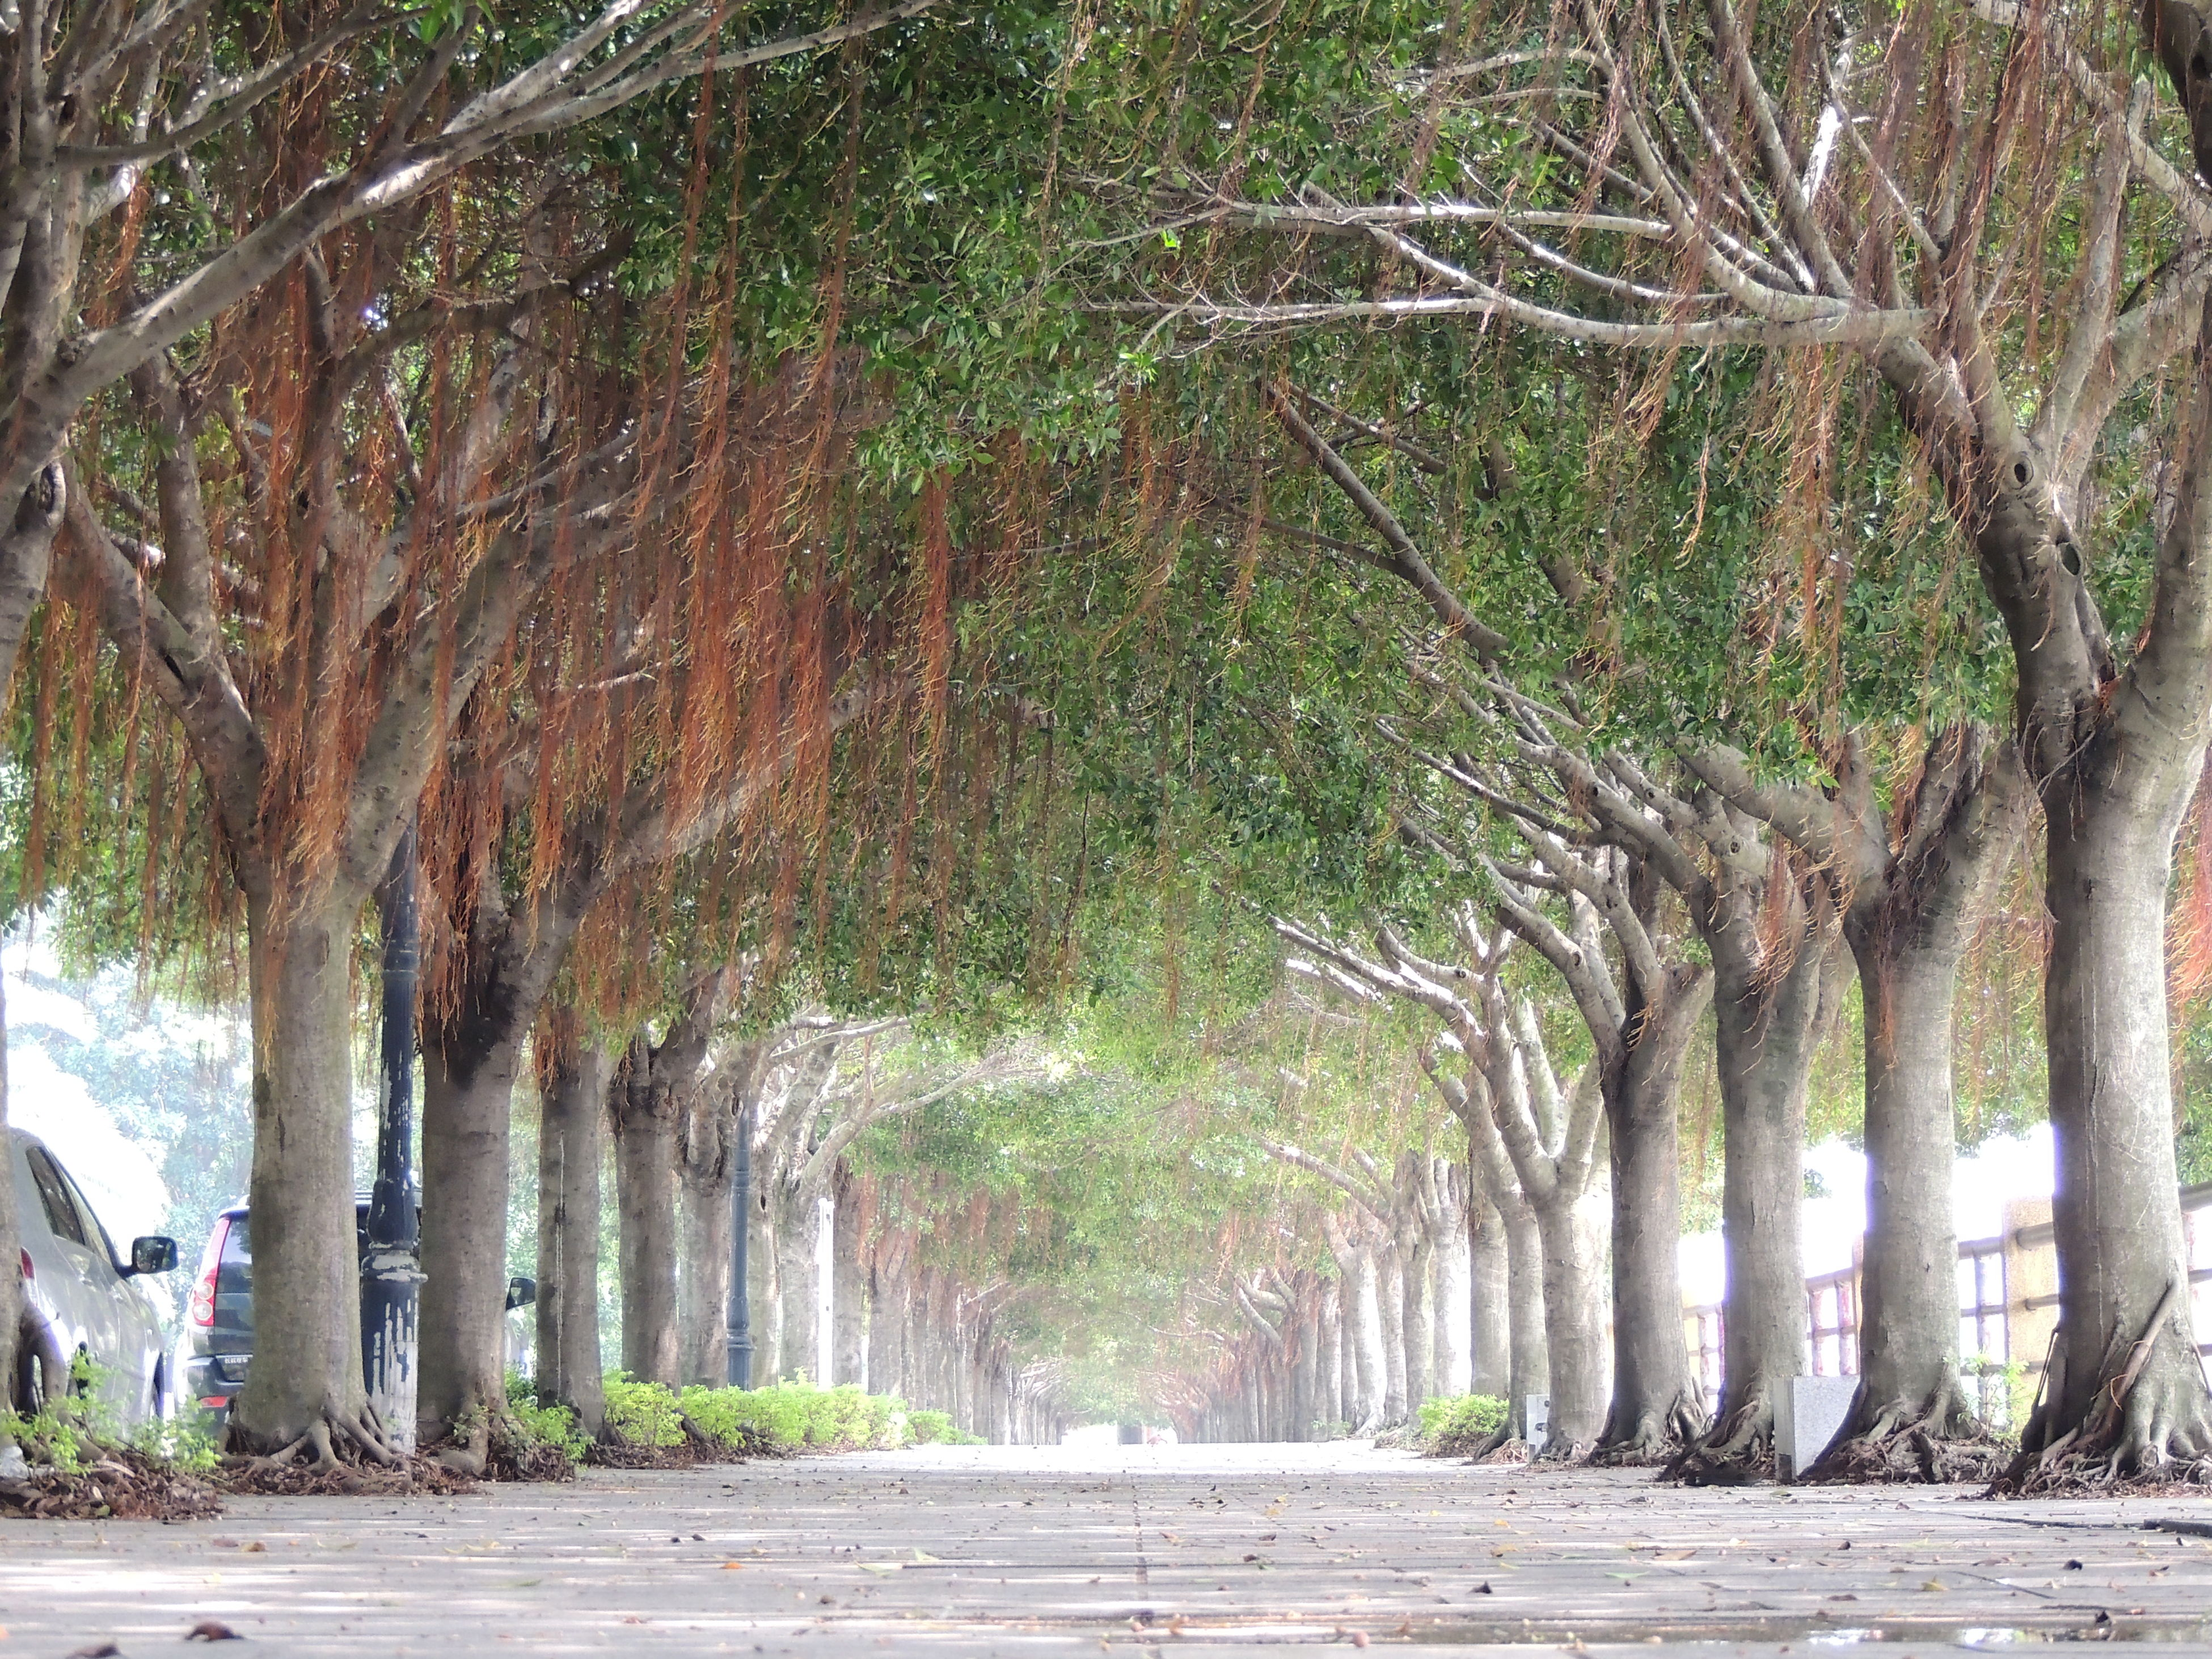 tree, the way forward, tree trunk, footpath, growth, treelined, branch, road, diminishing perspective, transportation, tranquility, nature, walkway, pathway, street, vanishing point, empty, outdoors, beauty in nature, park - man made space